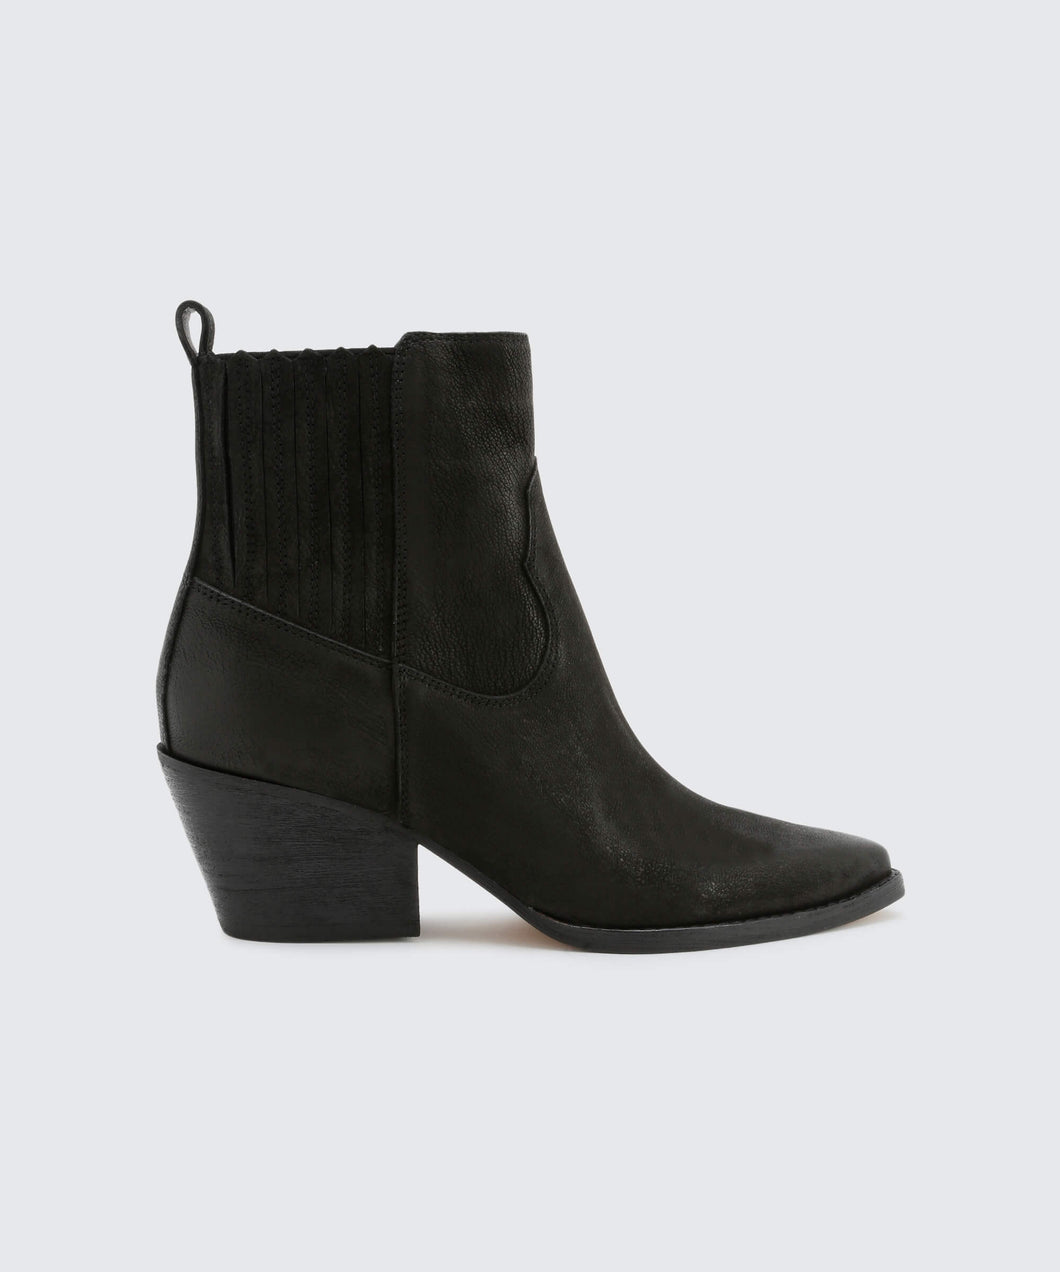 SUVI BOOTIES BLACK -   Dolce Vita